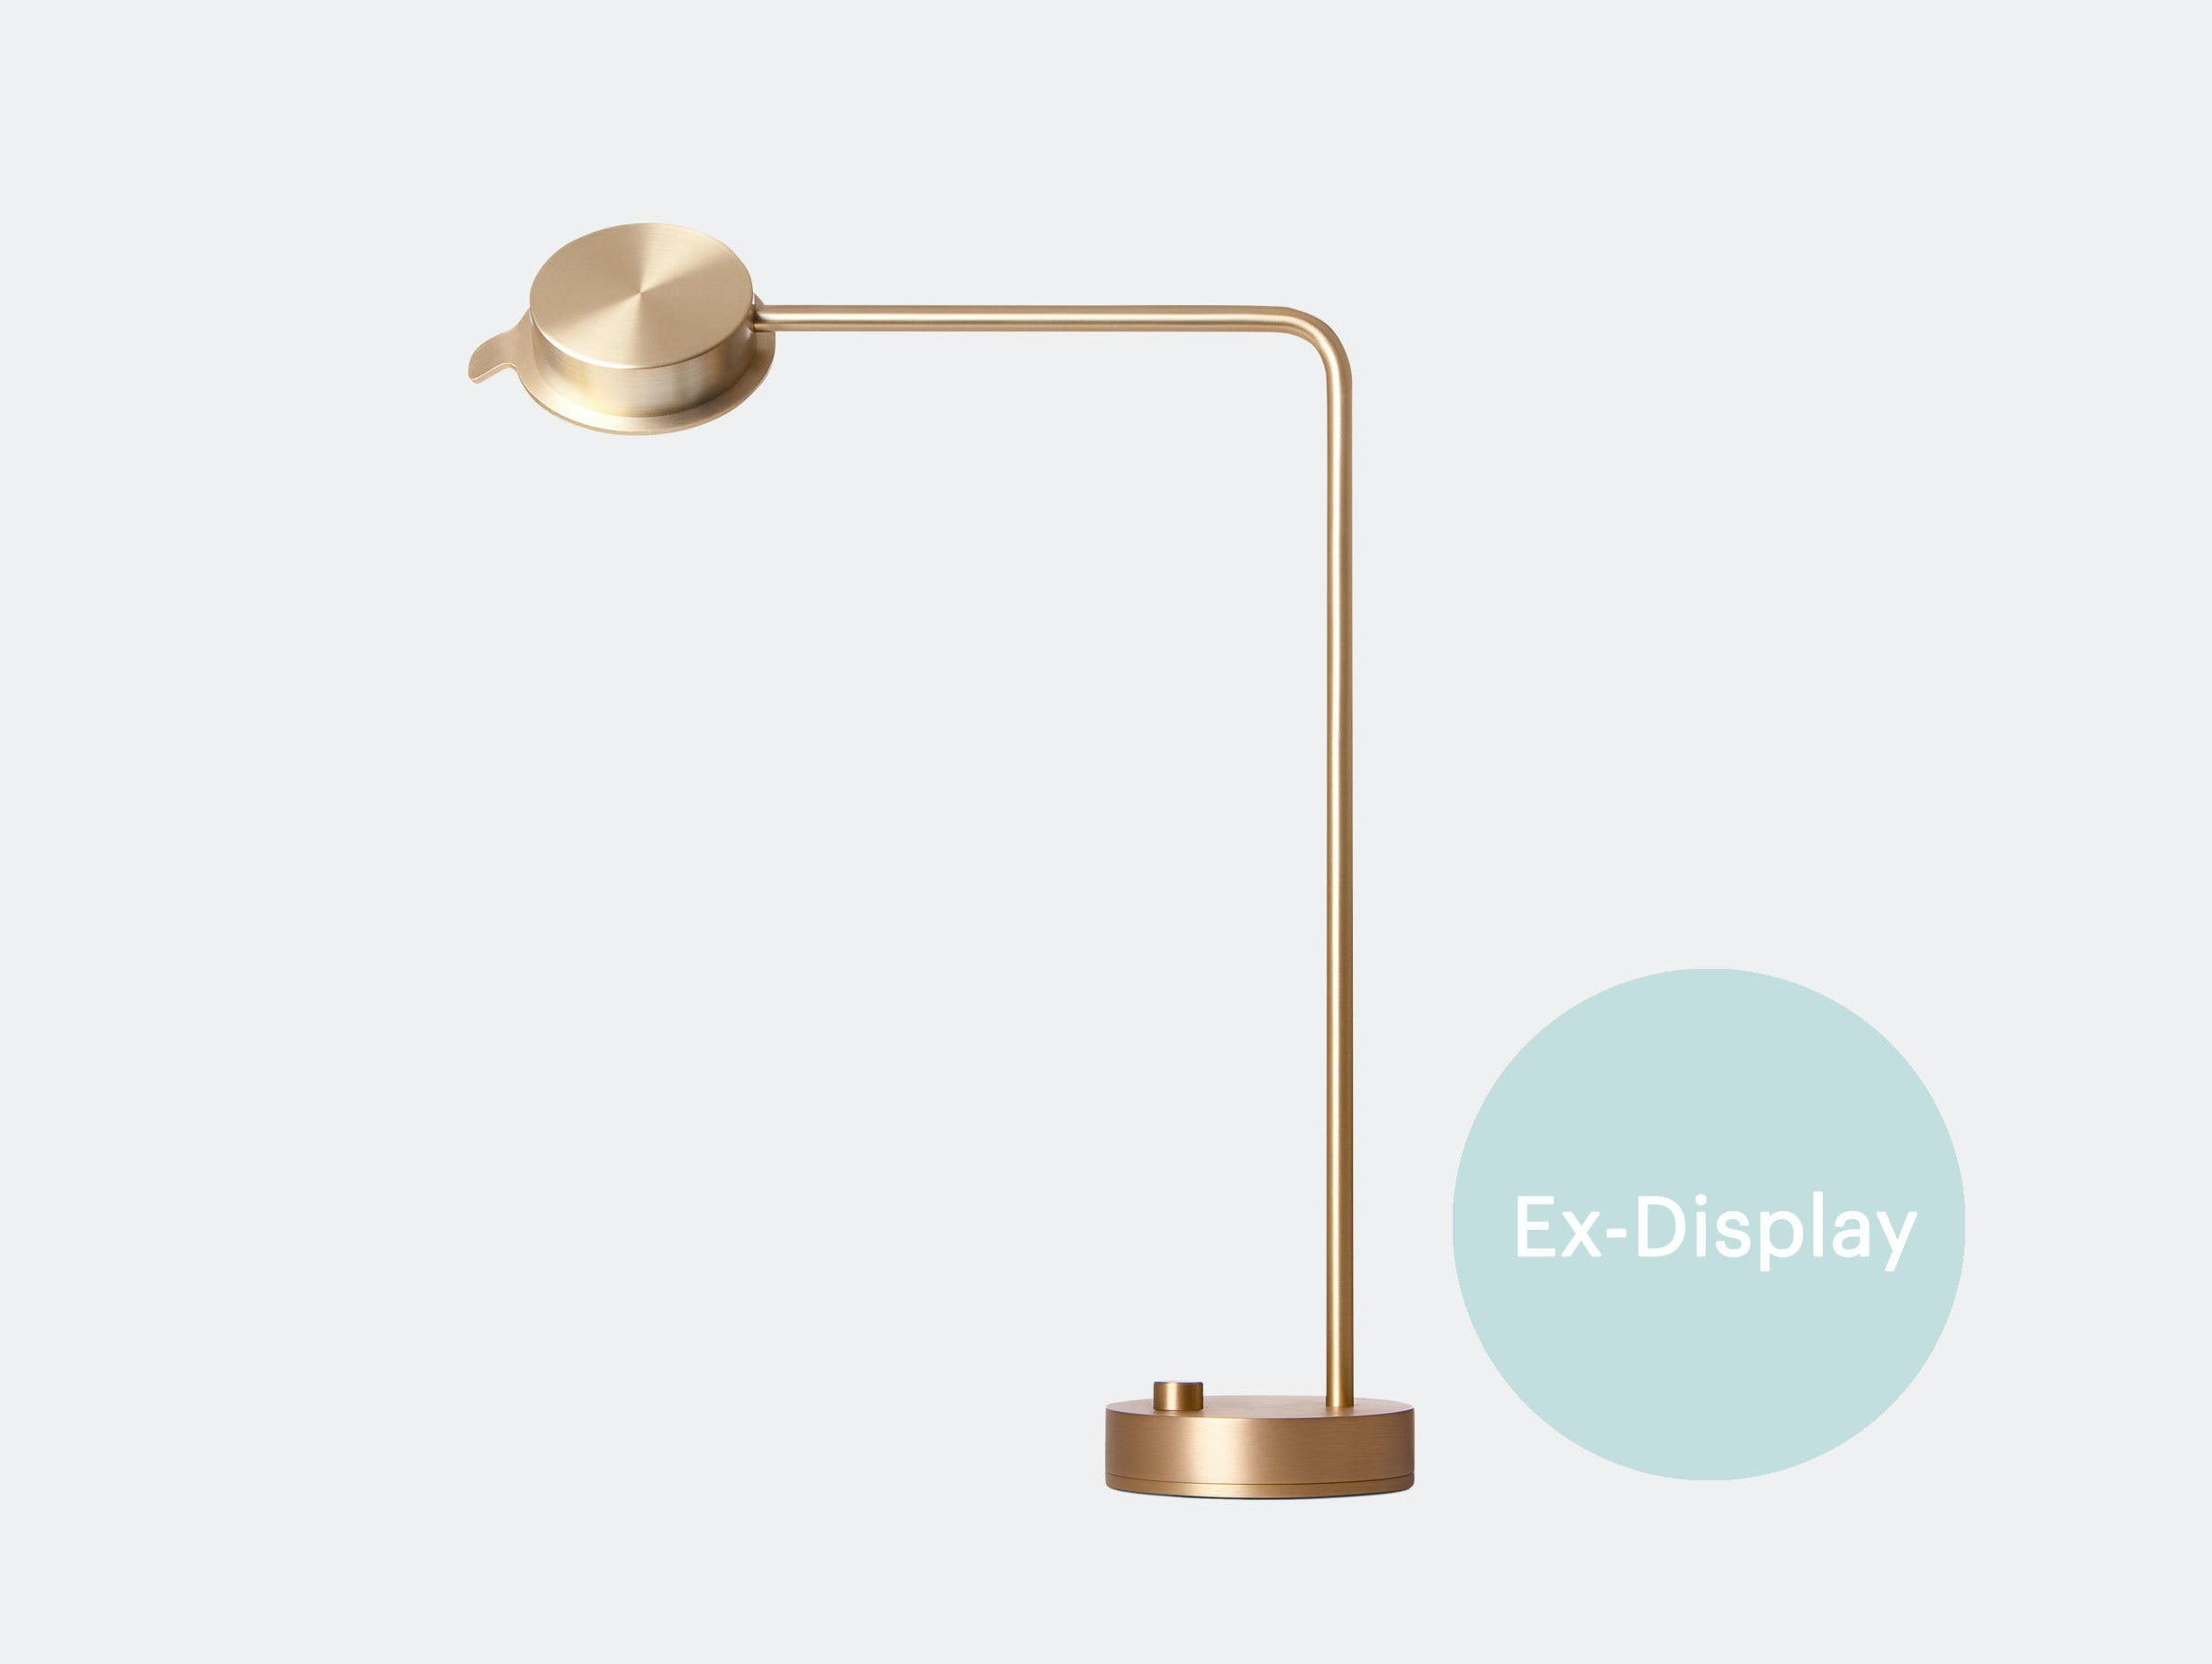 w102 Table Lamp / 30% off in our Summer Sale at £420 image